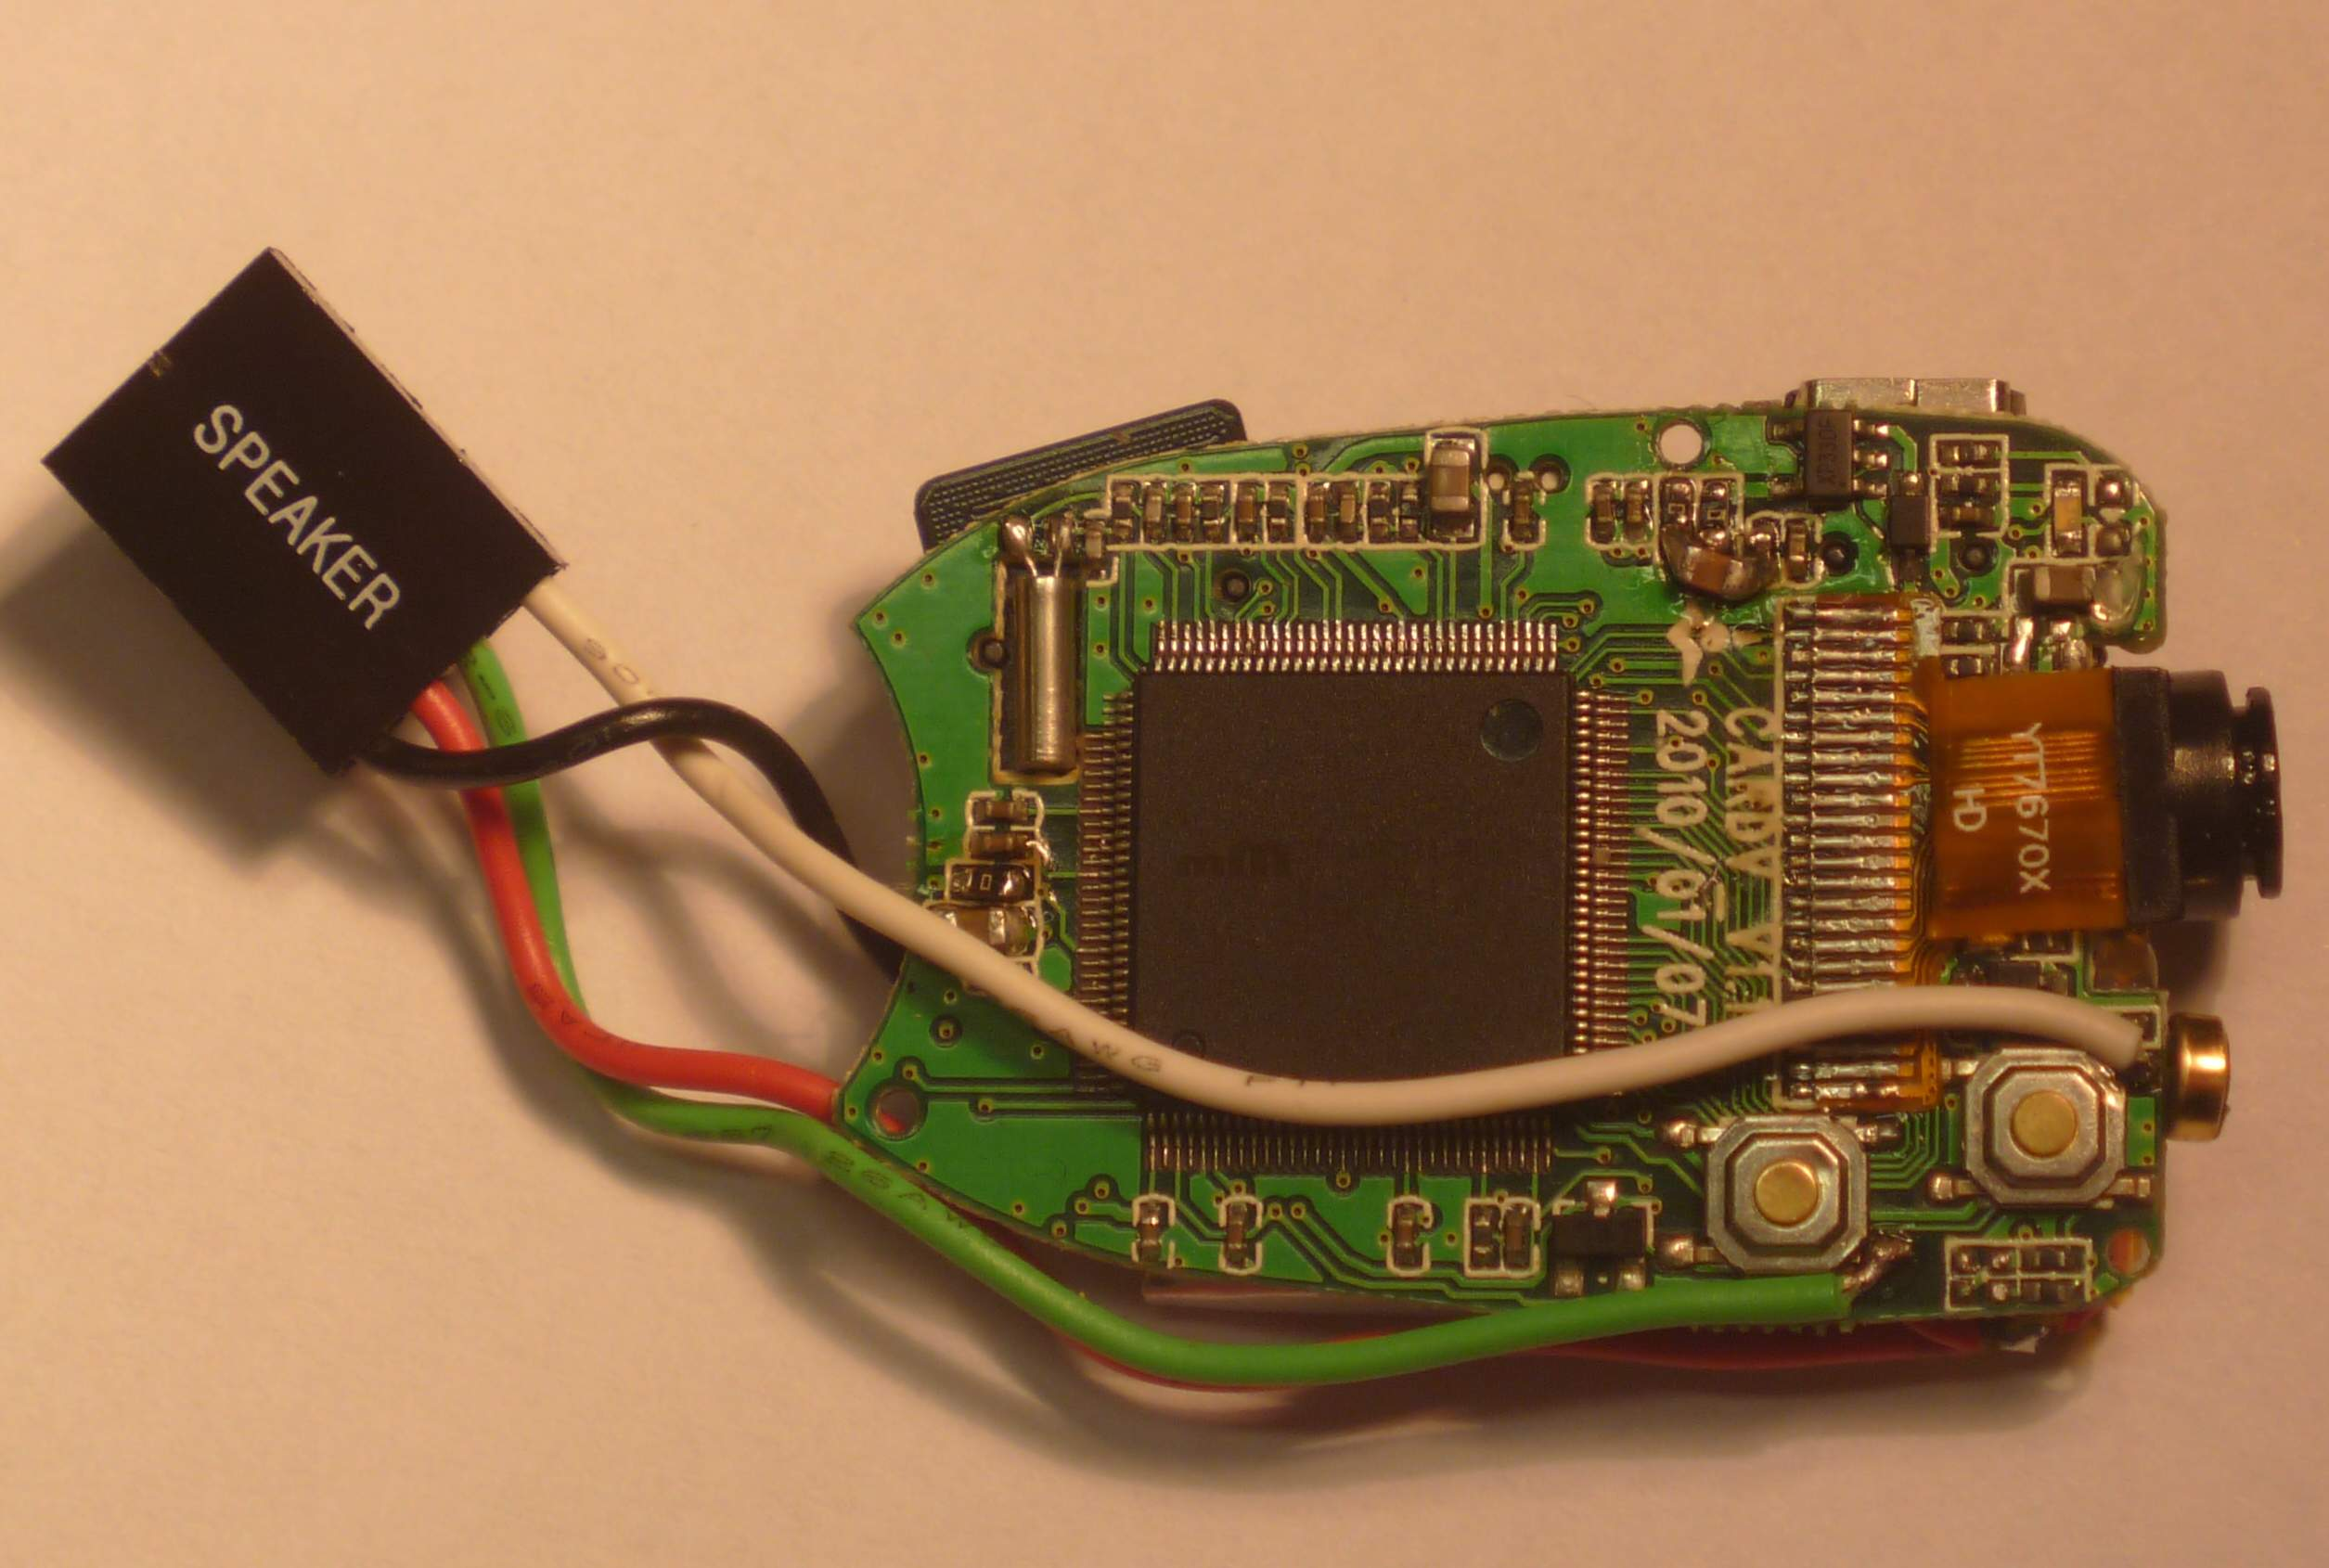 Picture of Keychain 808 Spy Camera With PIR Motion Detector Controlled by Arduino Chip